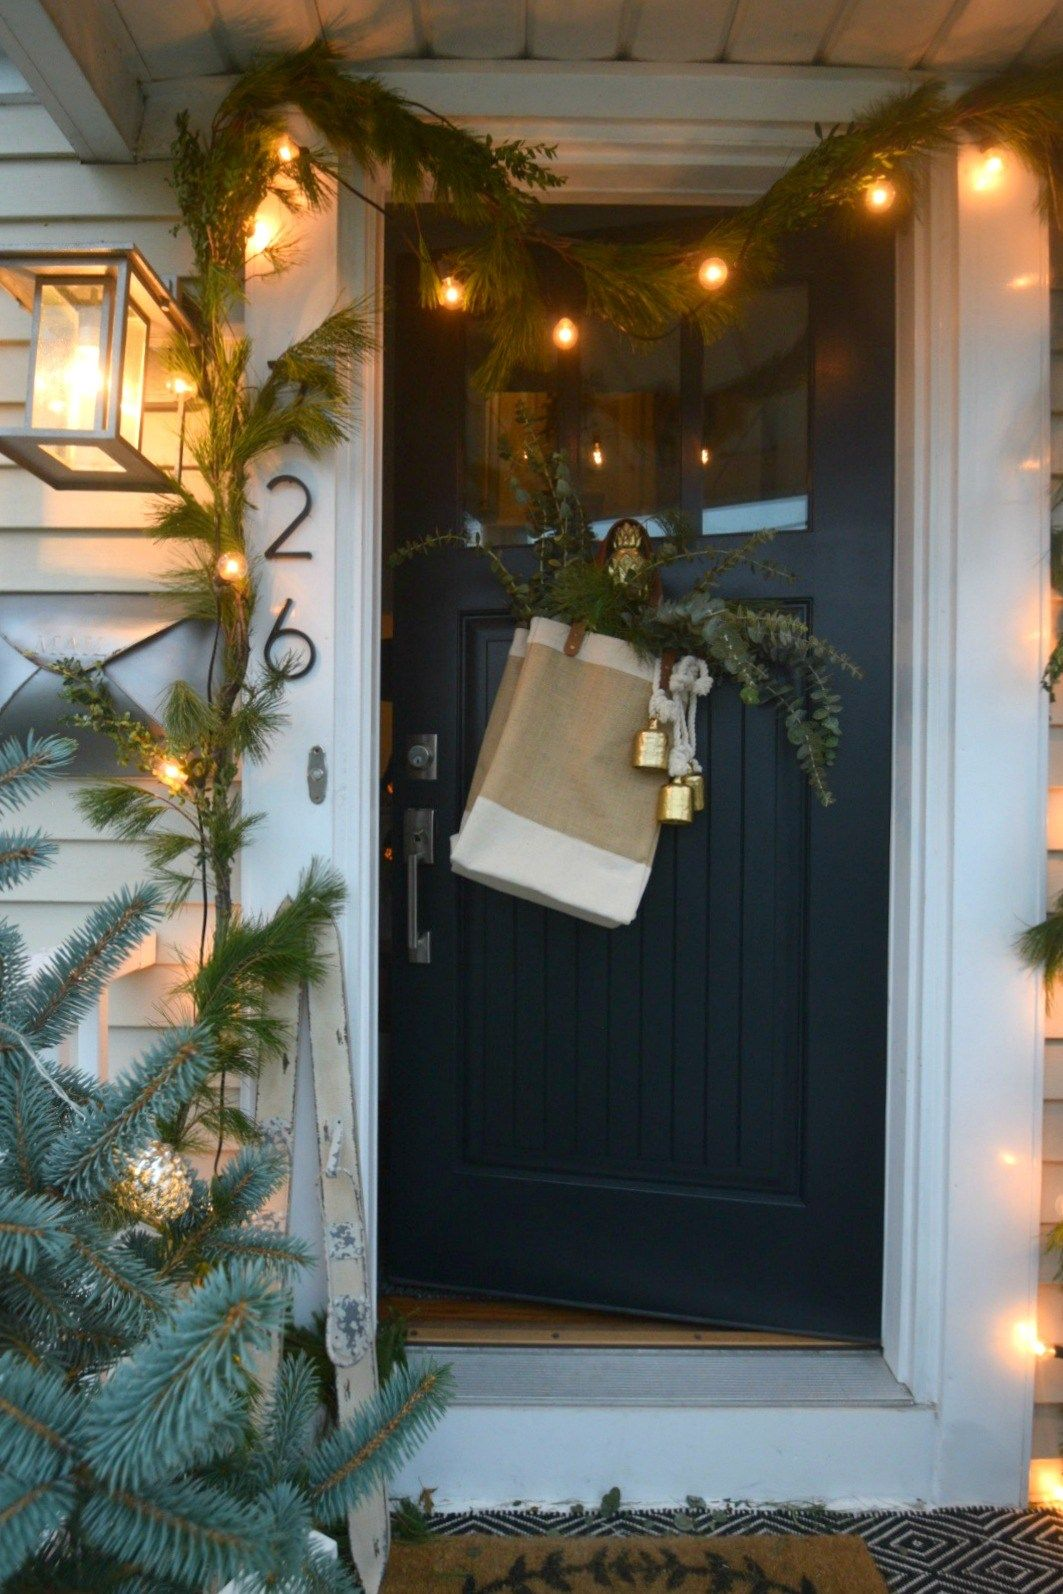 Christmas Ideas In A Small Space Holiday Housewalk Main Floor Nesting With Grace Christmas House Lights Exterior Christmas Lights Decorating With Christmas Lights